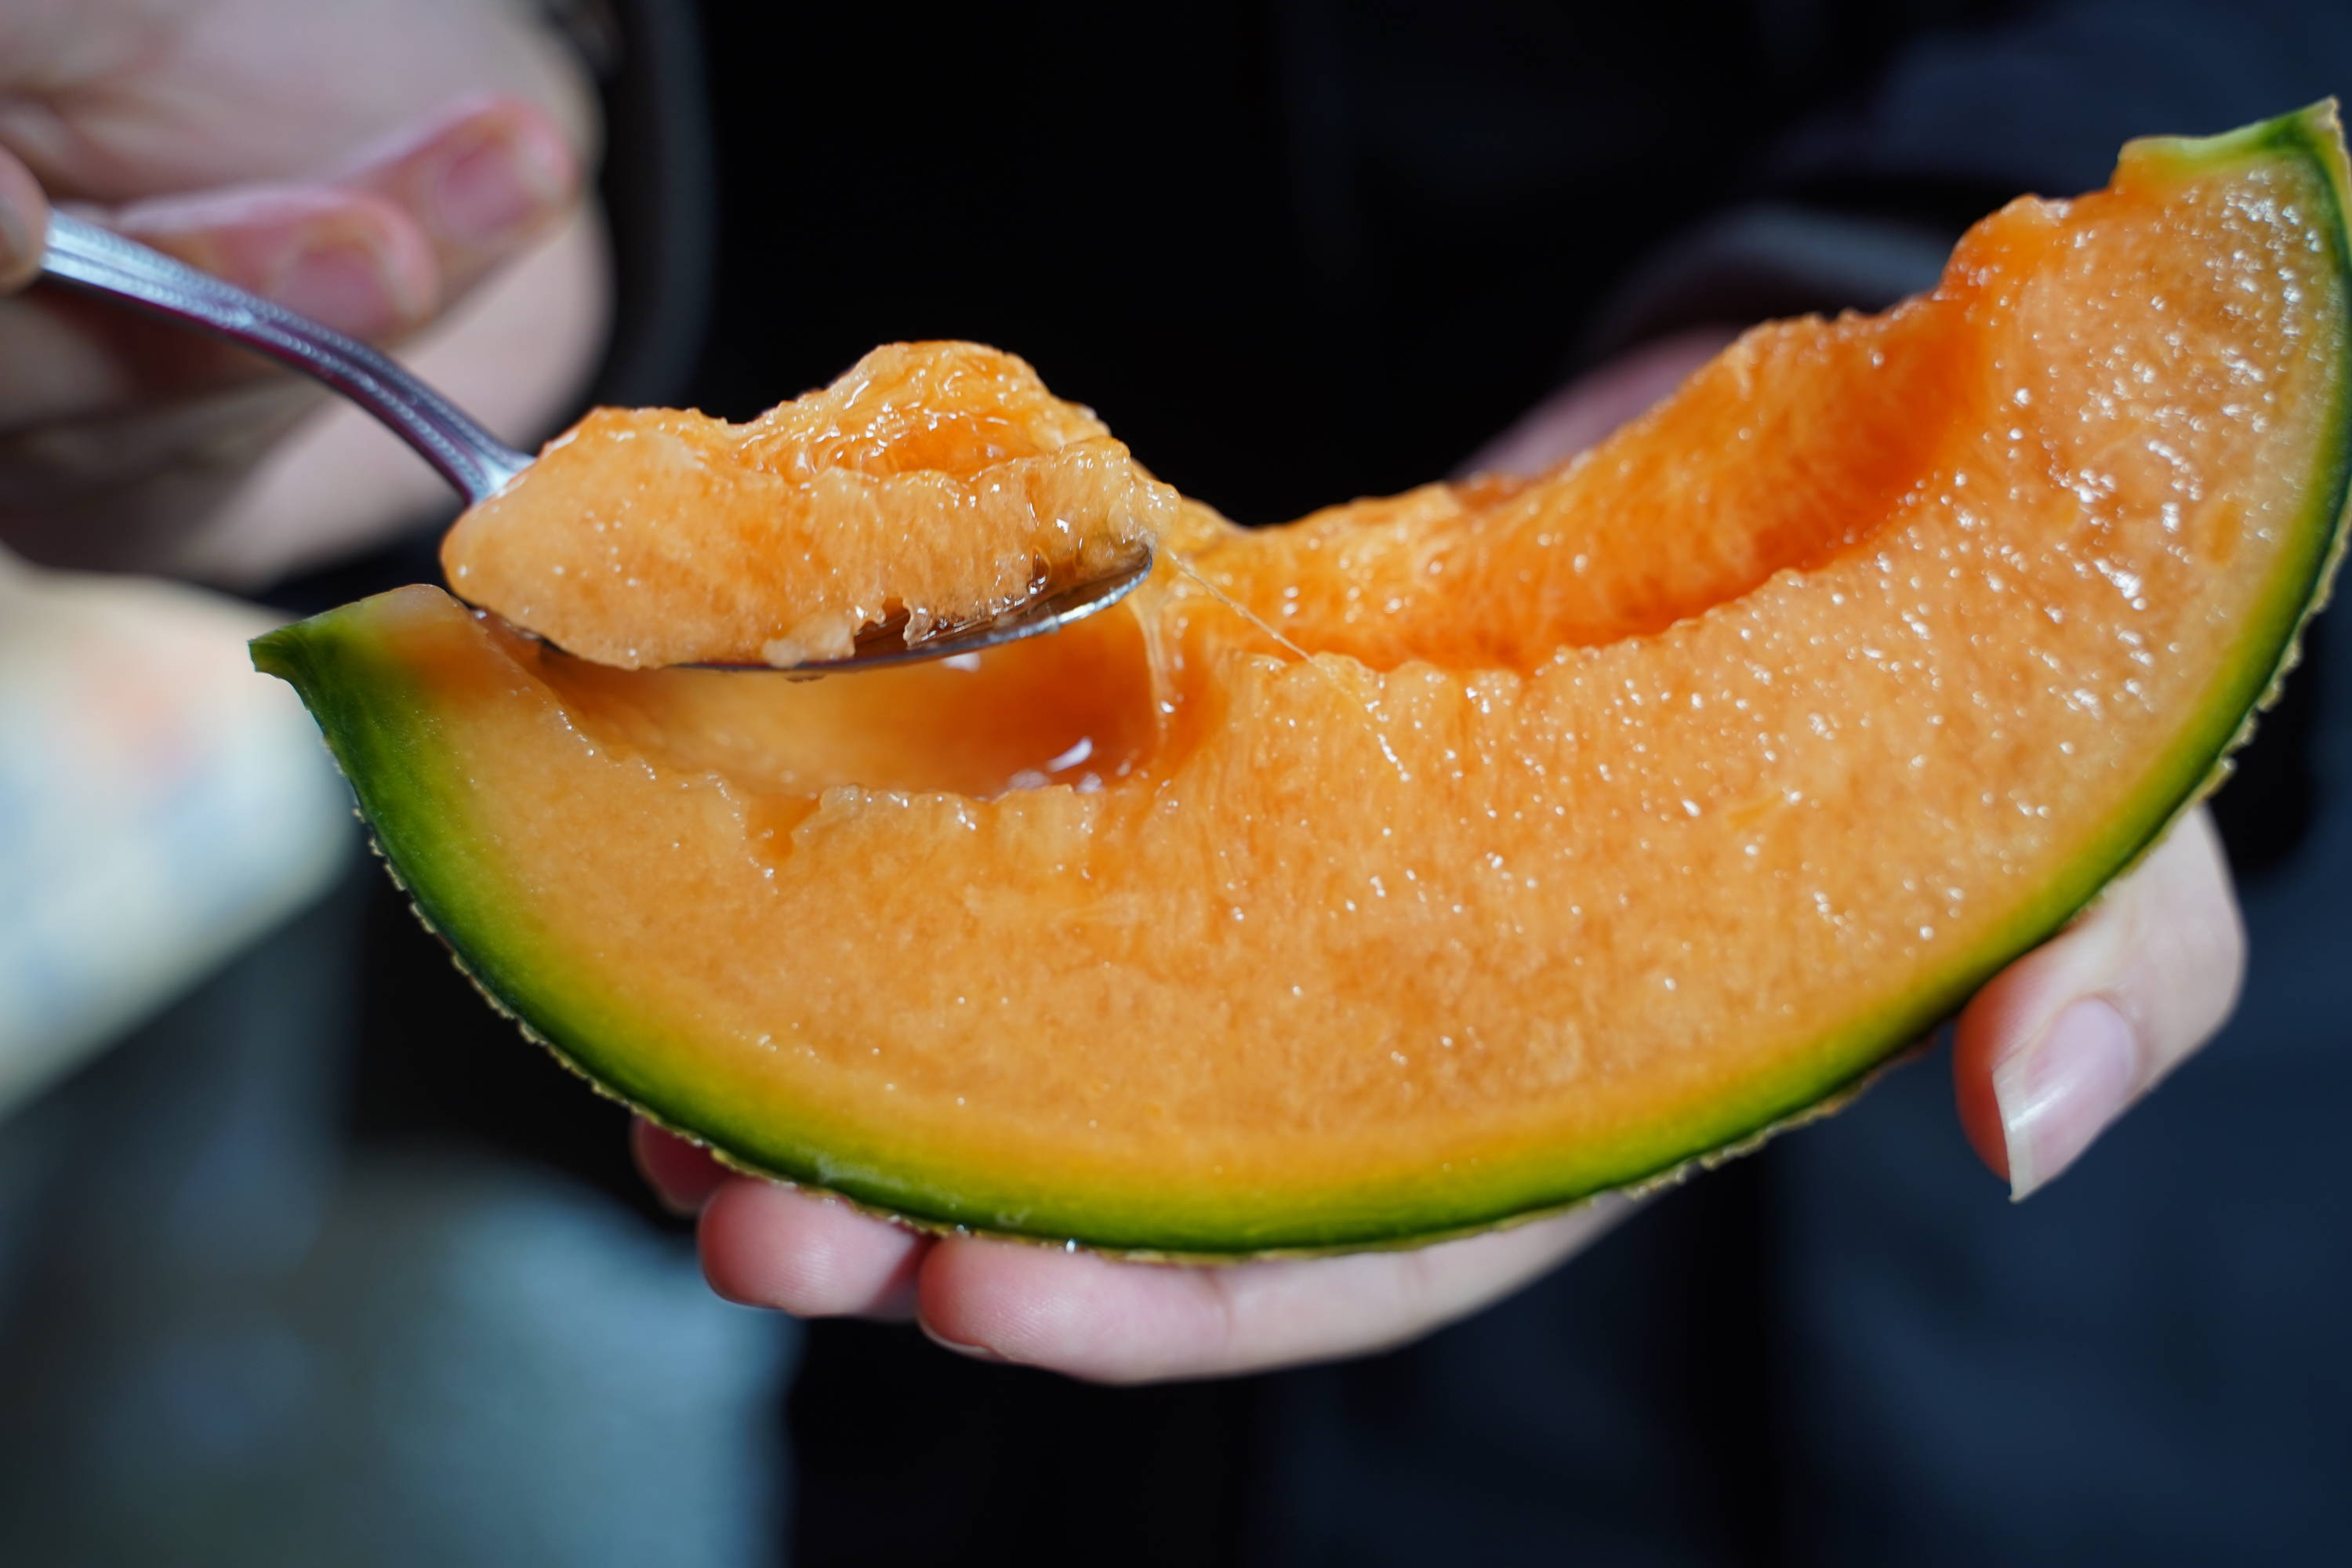 This is a picture of a slice of cantaloupe being spooned by a person.